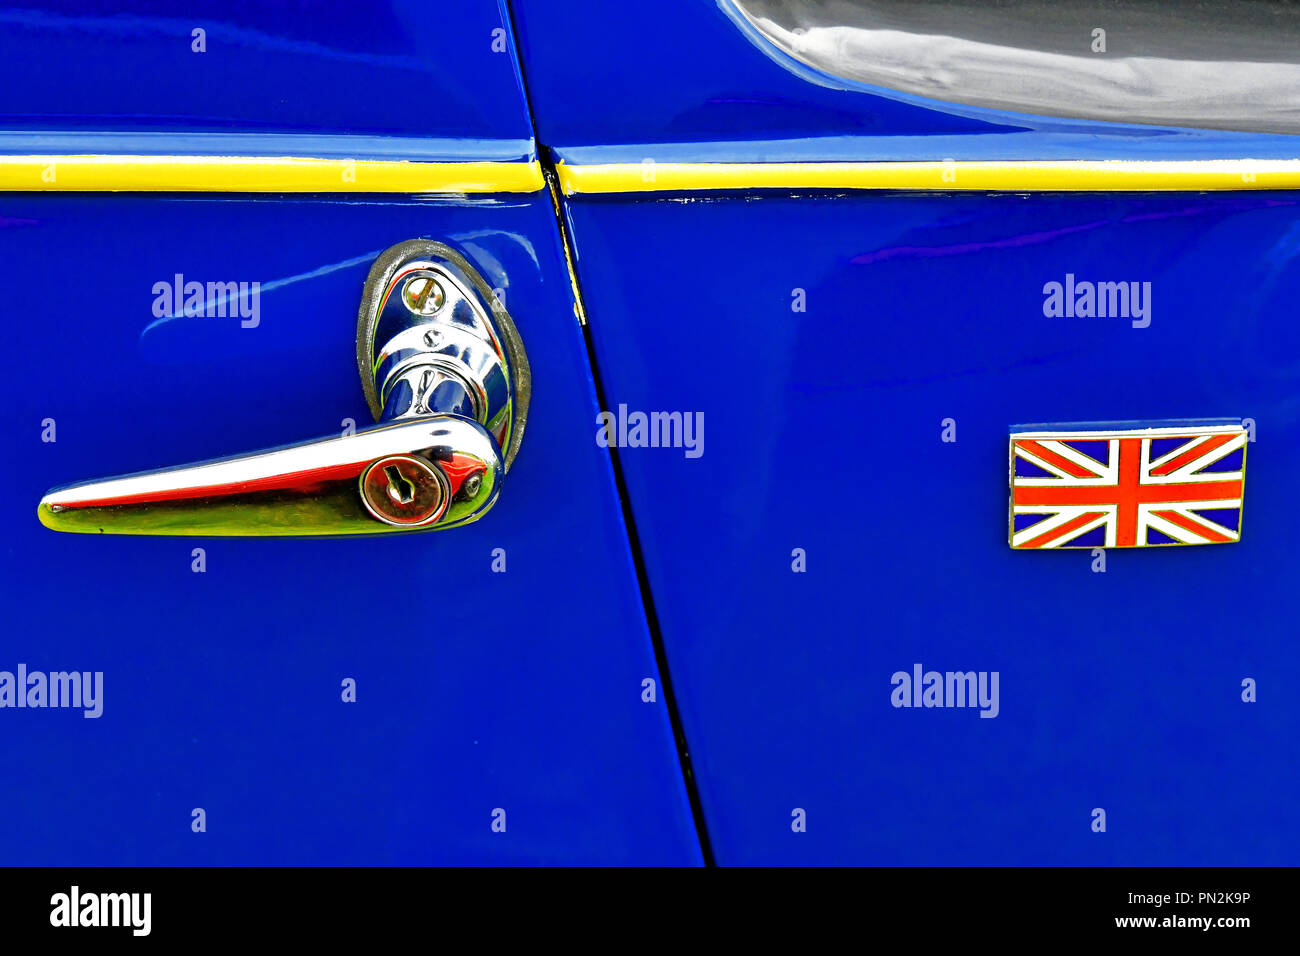 Whitley Bay Motor Show vintage blue car and yellow trim door with union flag badge - Stock Image